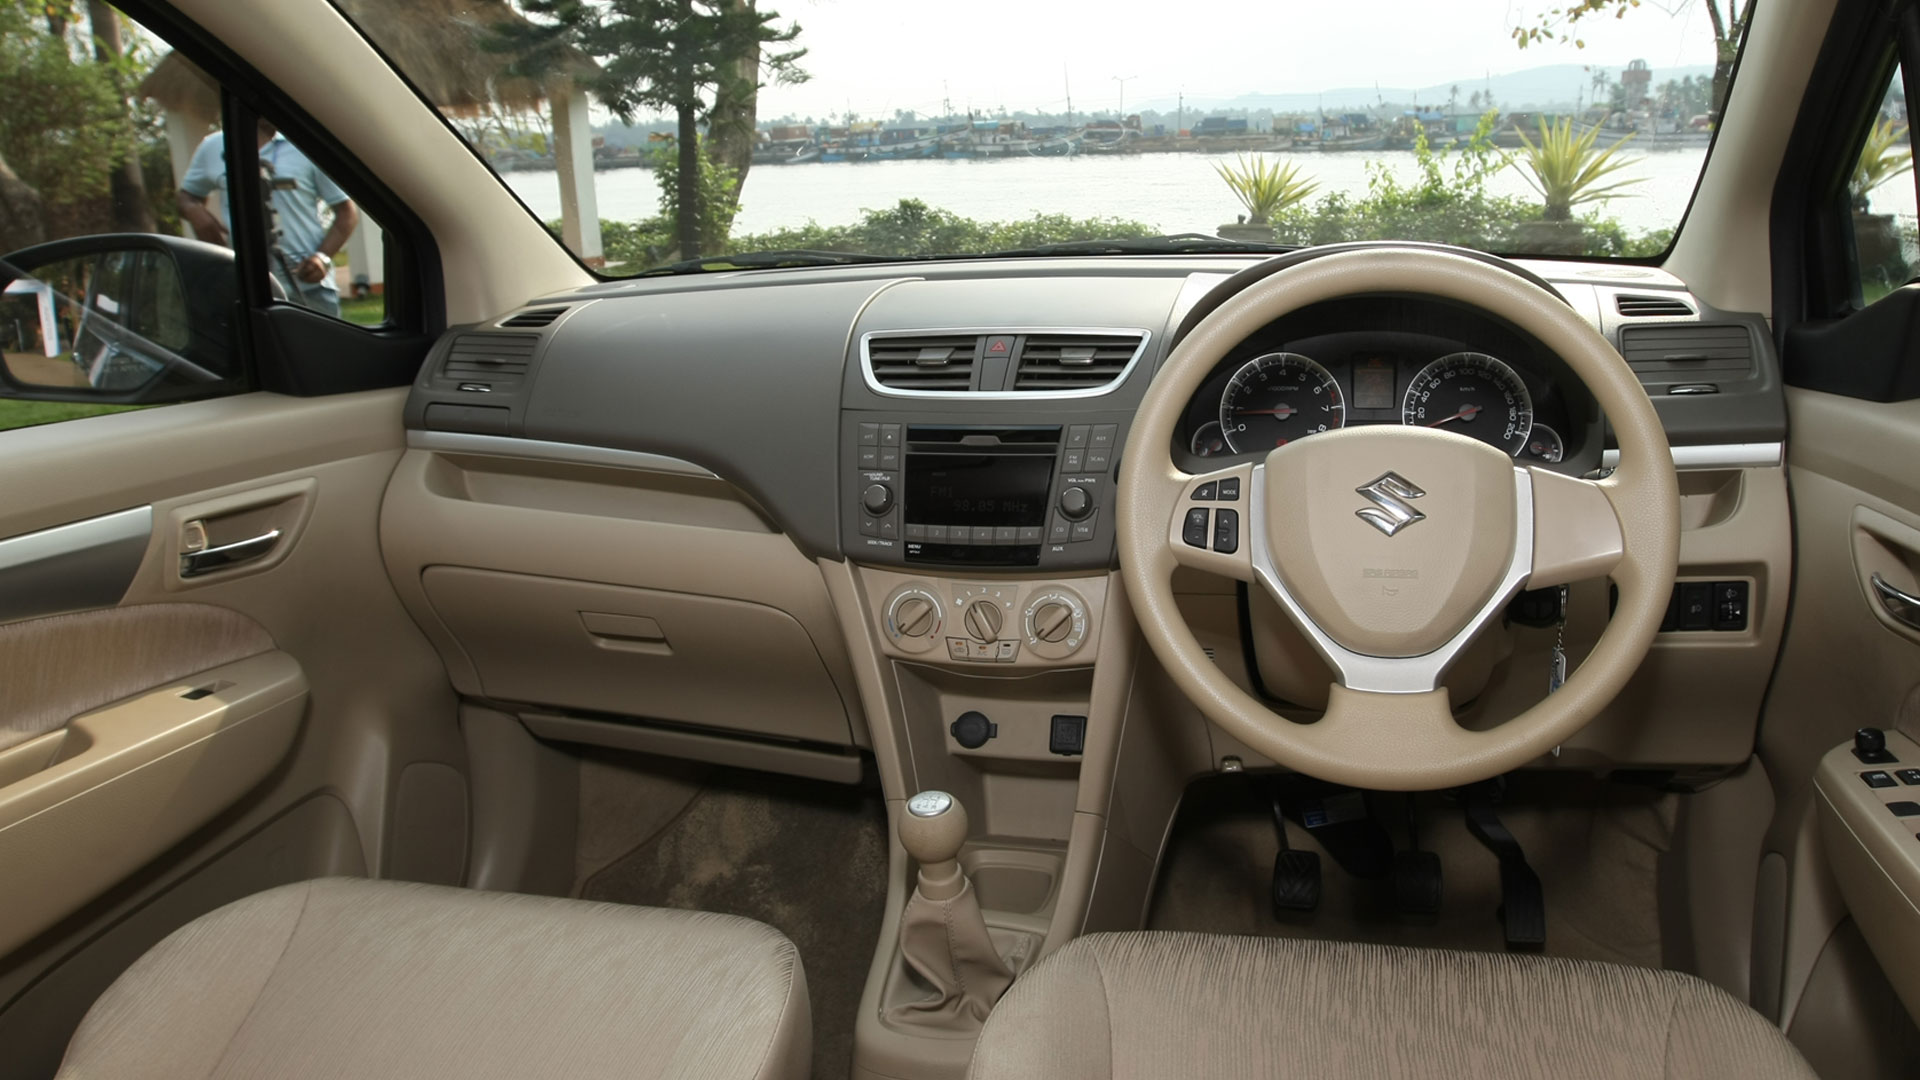 Maruti suzuki ertiga 2015 vxi price mileage reviews for Swift vxi o interior